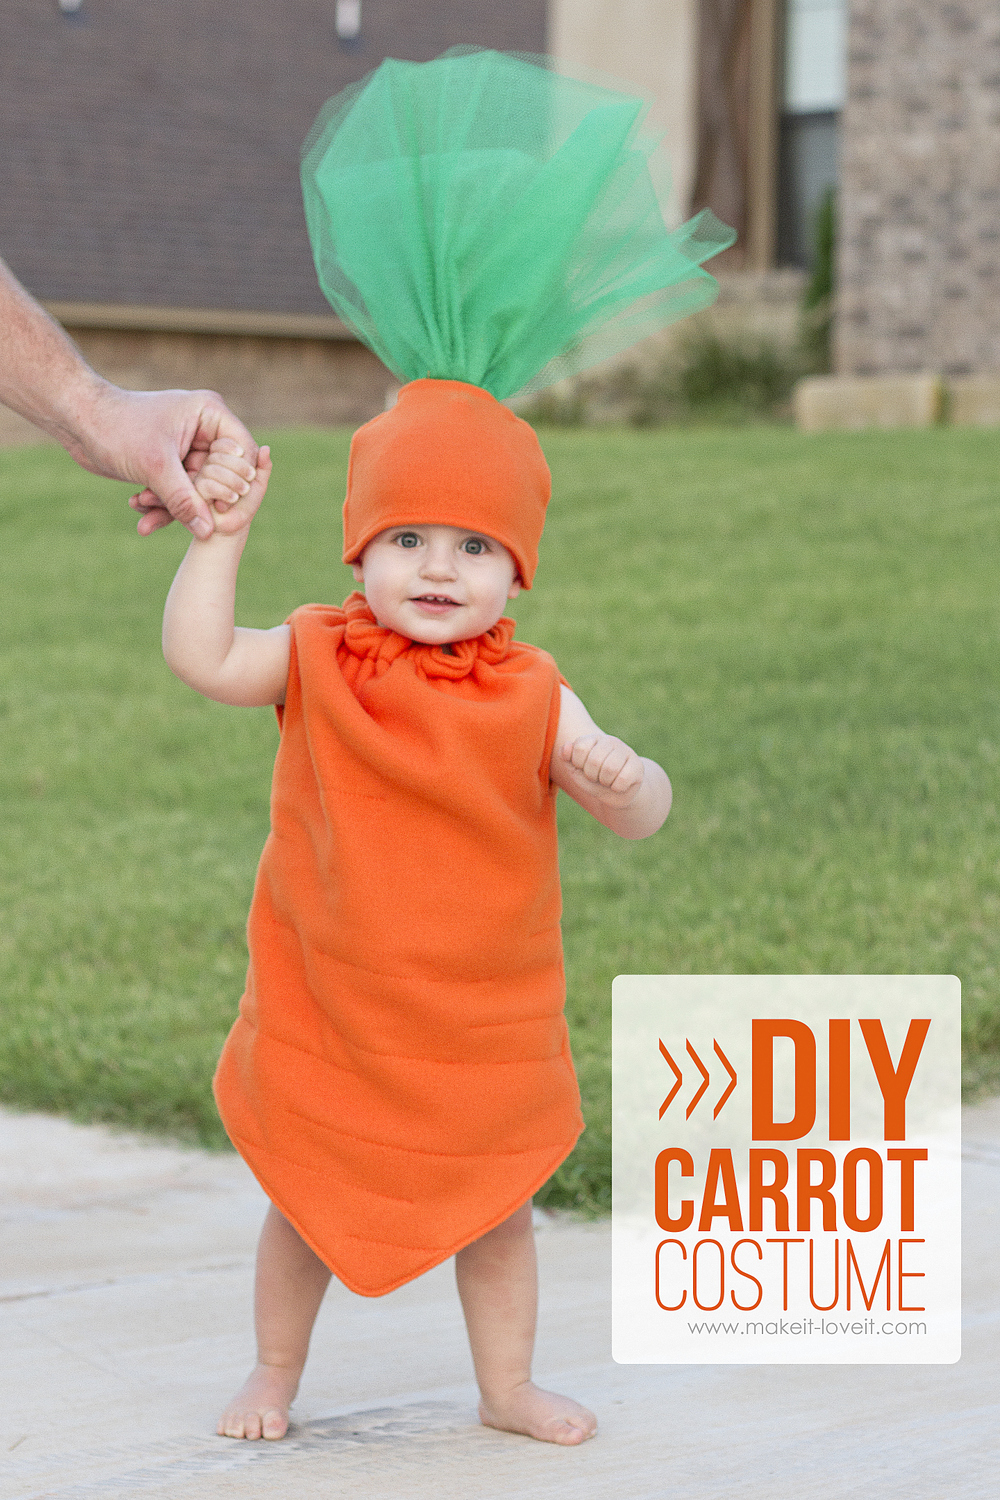 DIY Carrot Costume 1